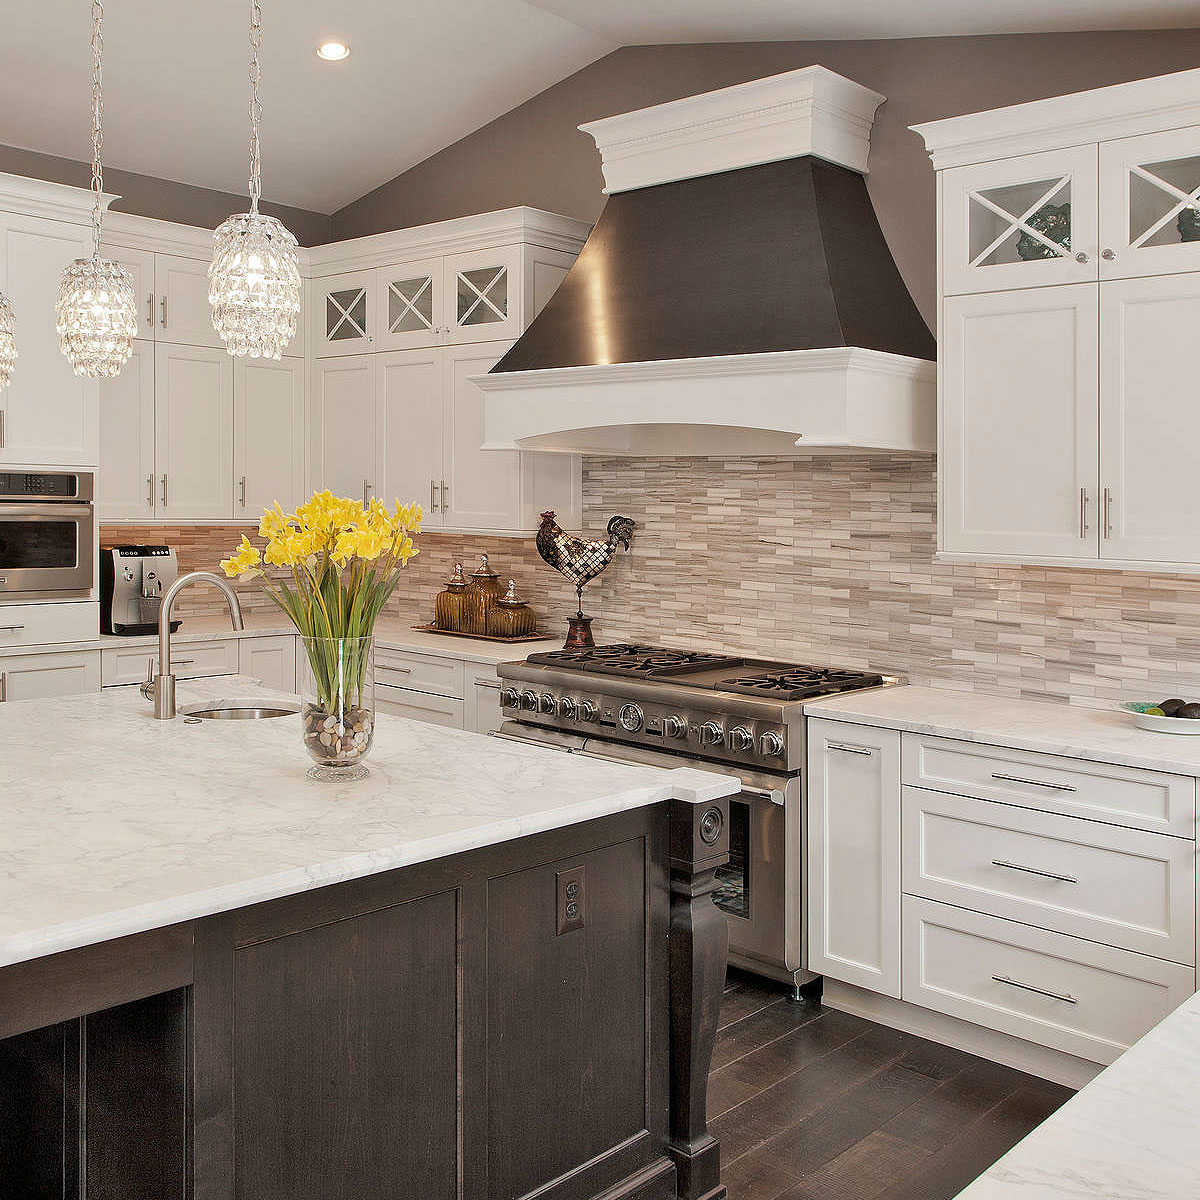 Backsplash Best Kitchen Ideas Top Trends